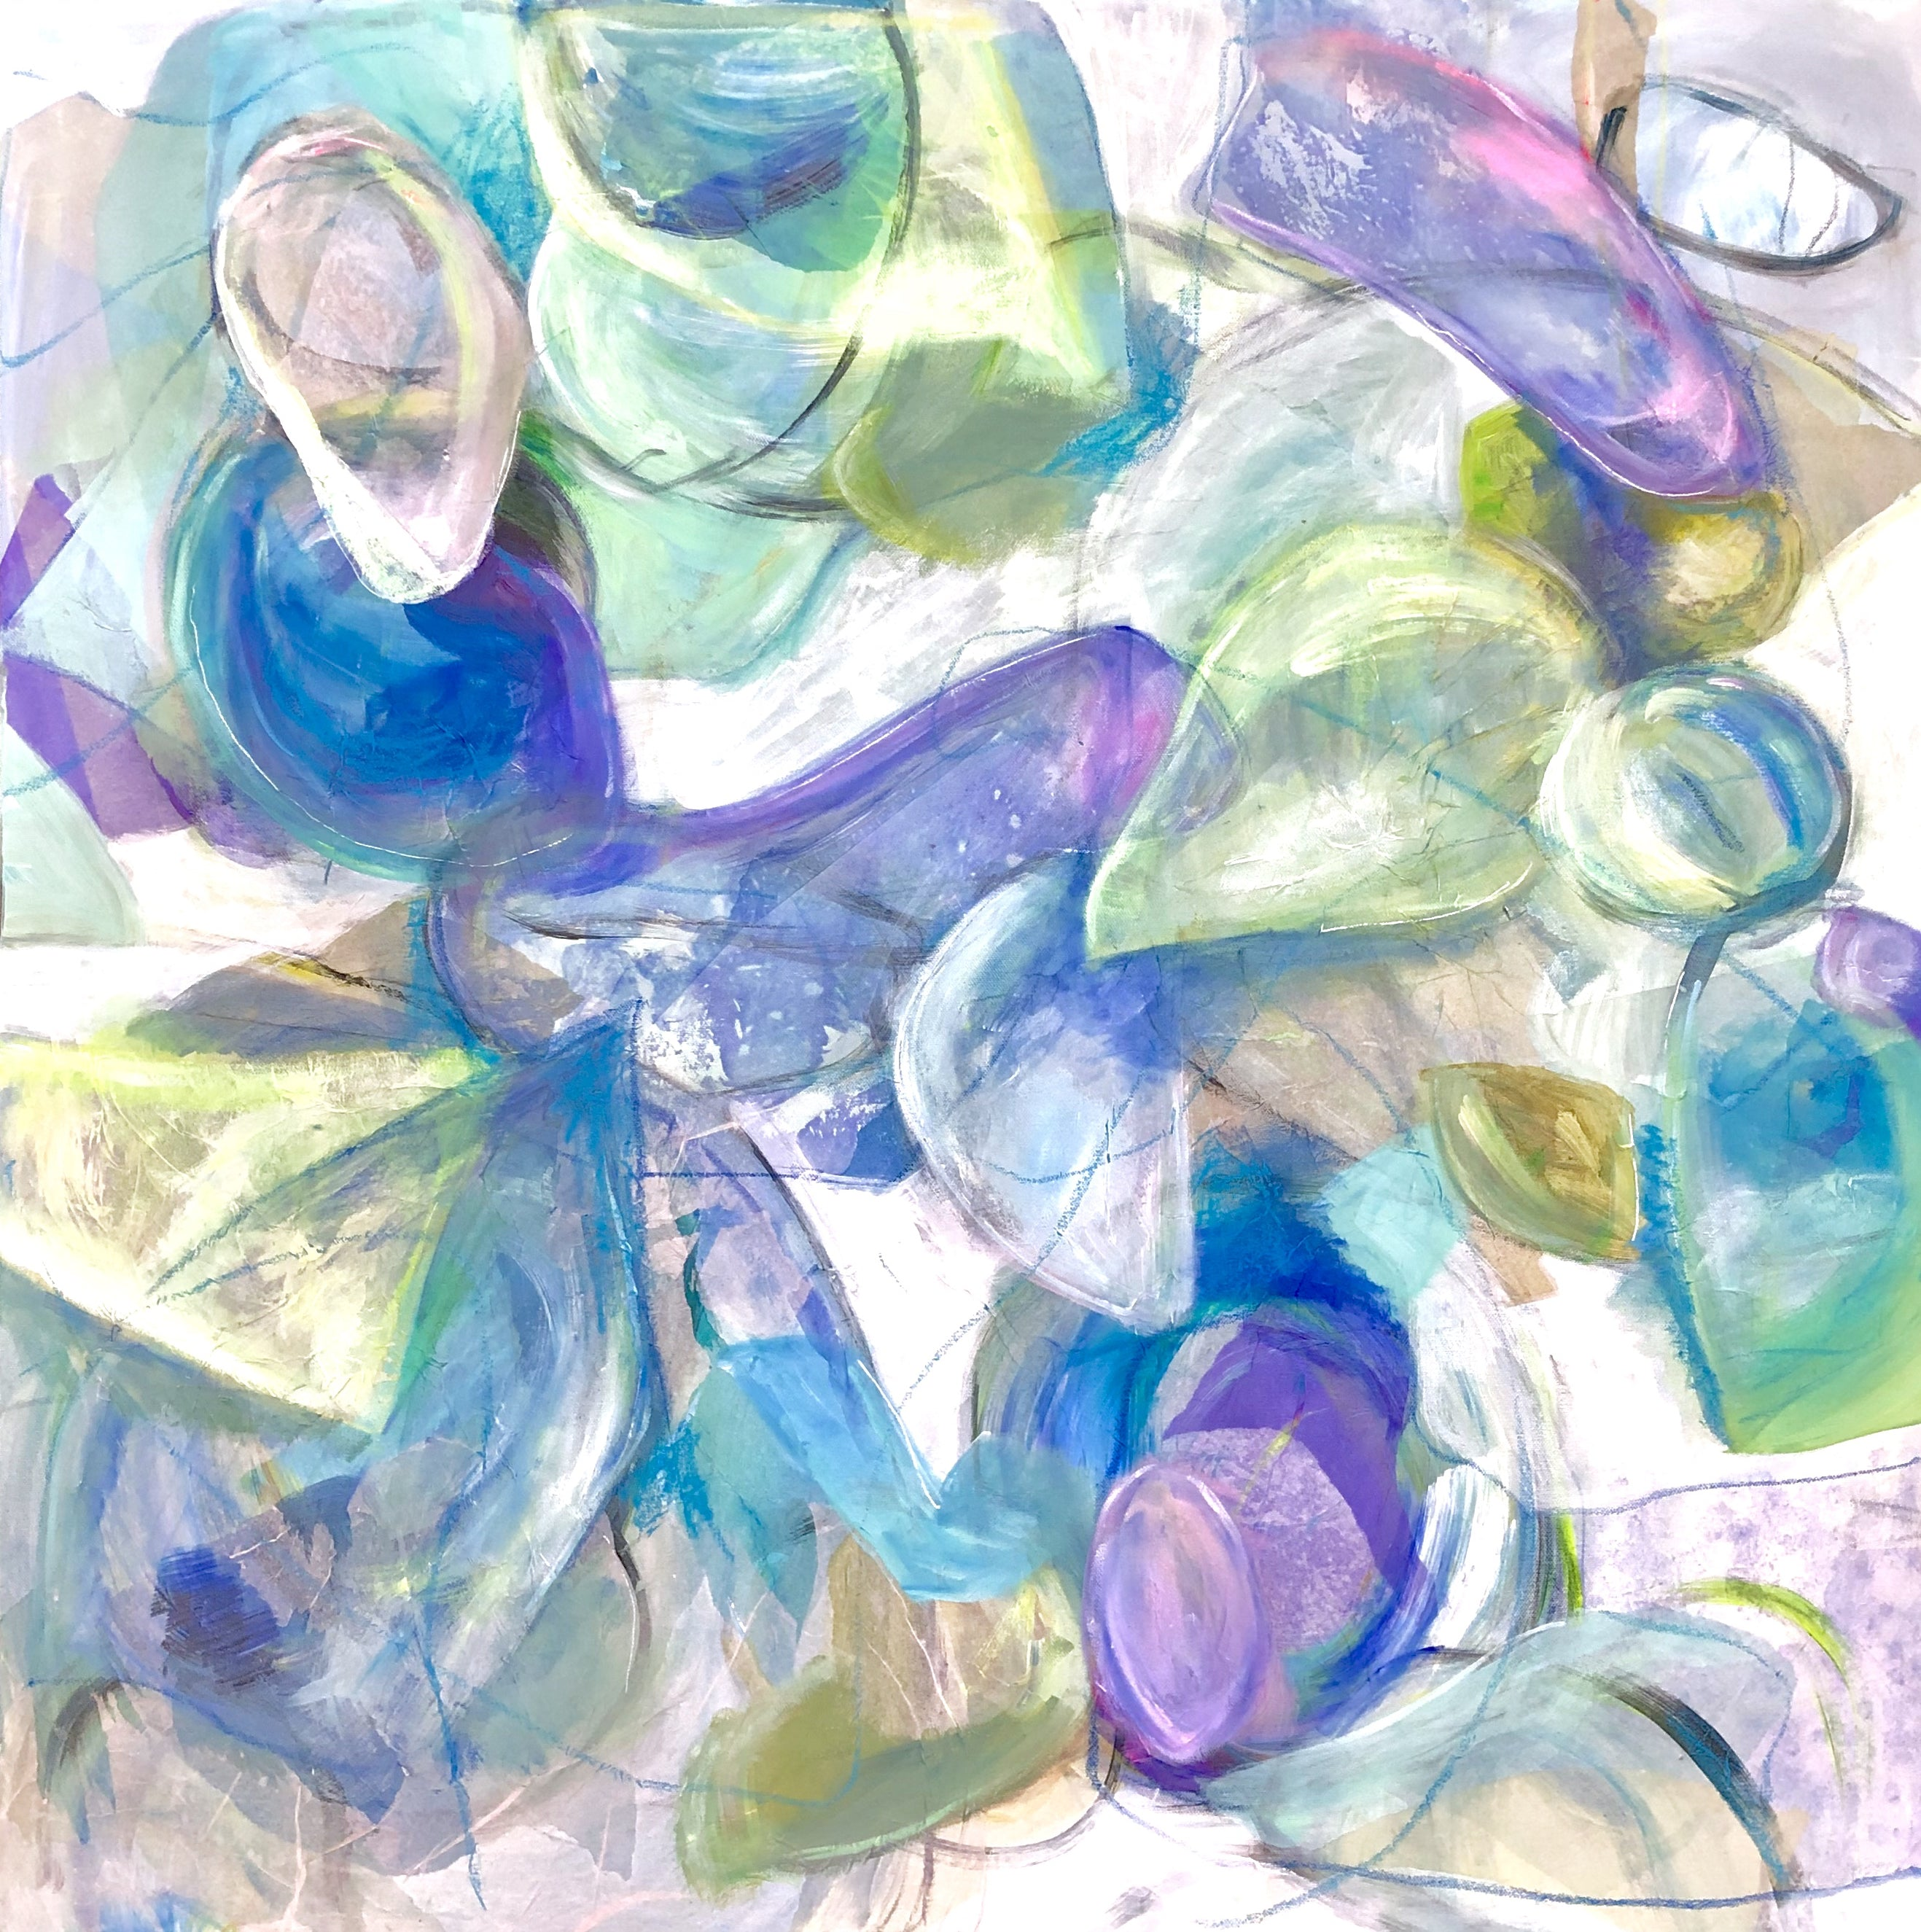 Italian Sea Glass, 36 x 36 in.